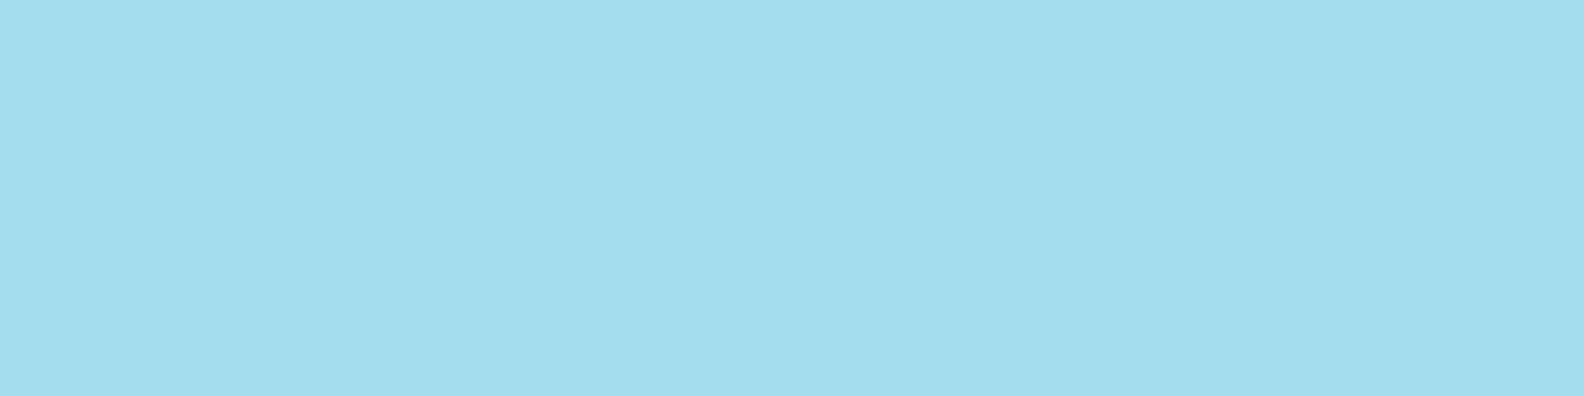 1584x396 Non-photo Blue Solid Color Background